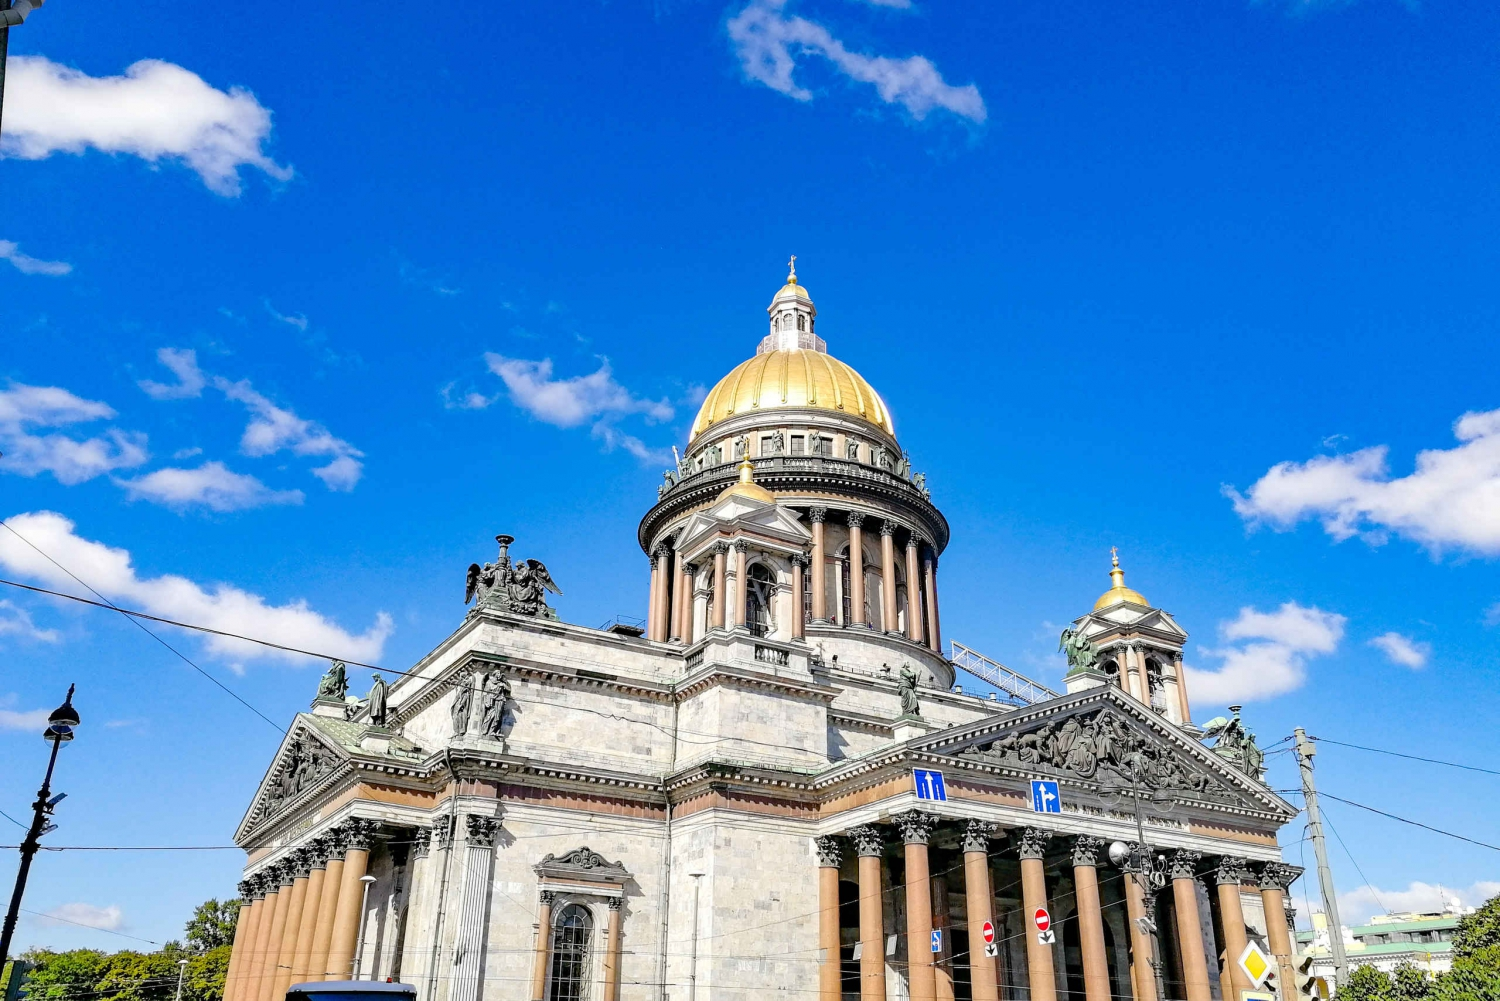 Saint Petersburg Private Tour with Isaac's Cathedral